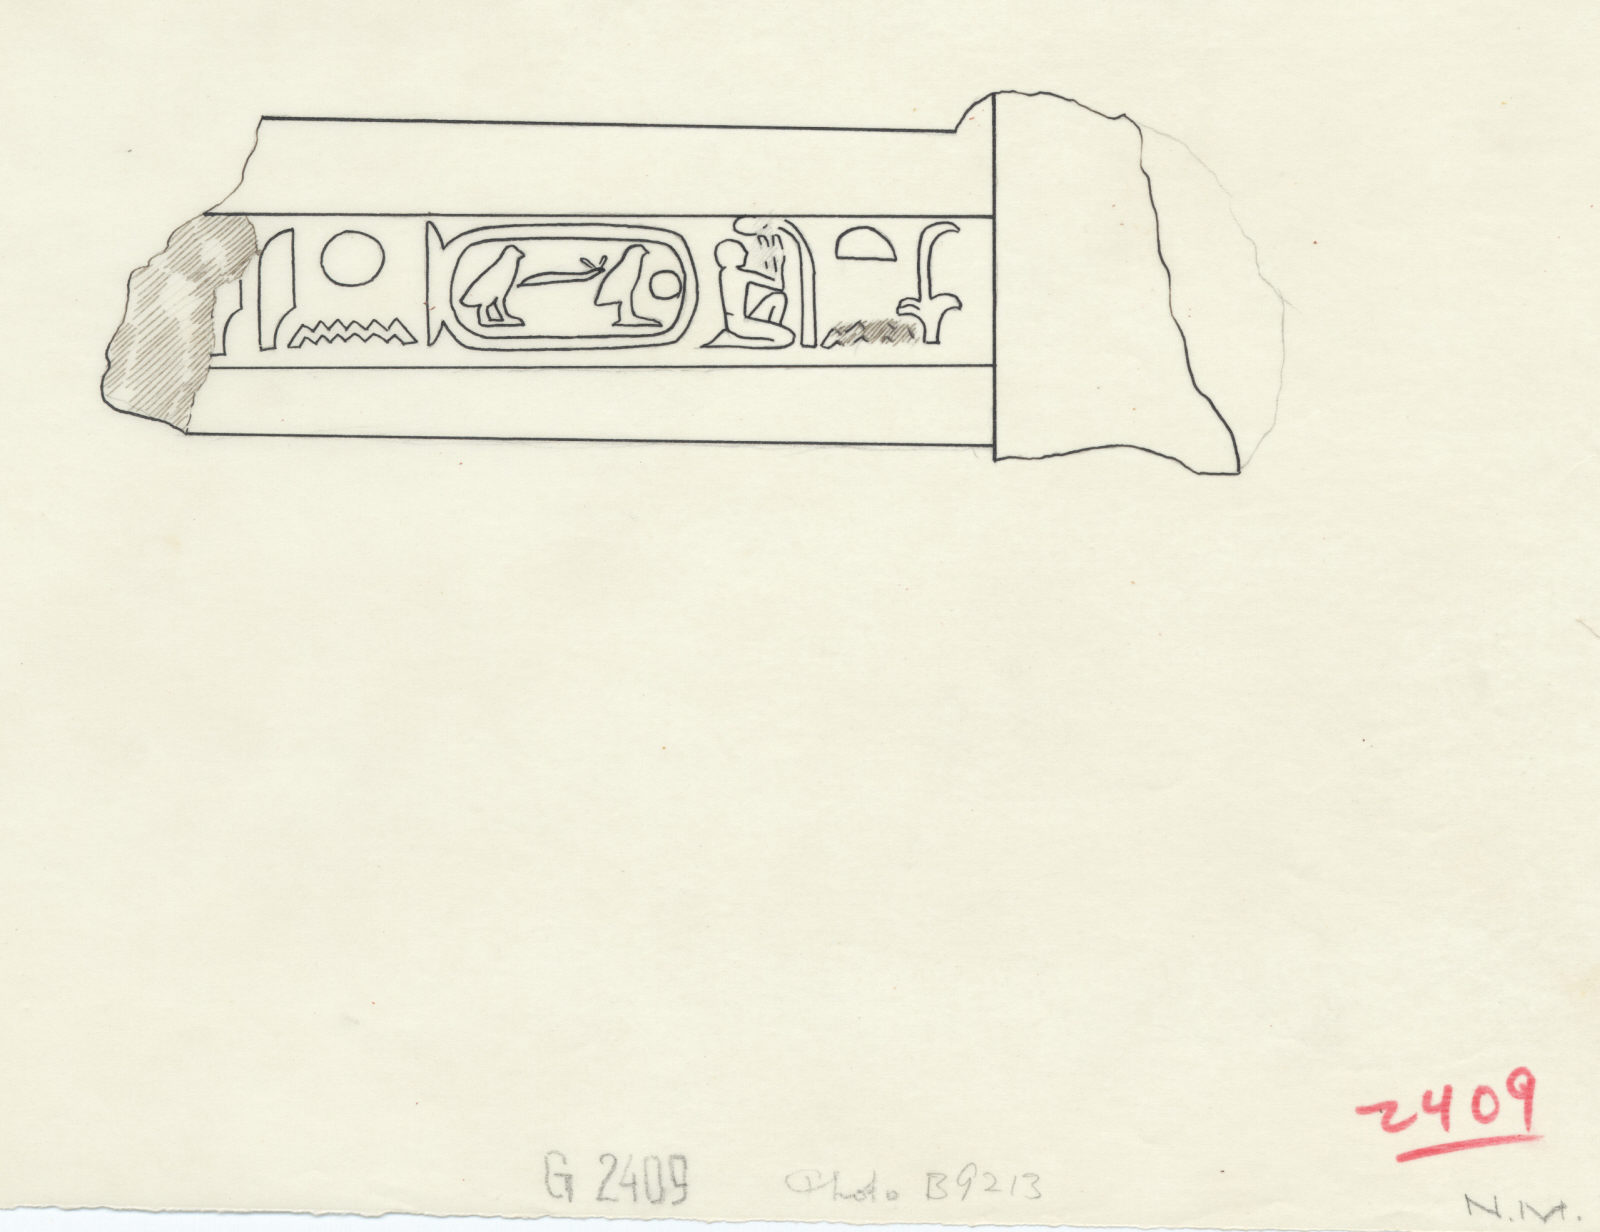 Drawings: lintel of Khuienkhufu from corridor between G 2409 and G 2419